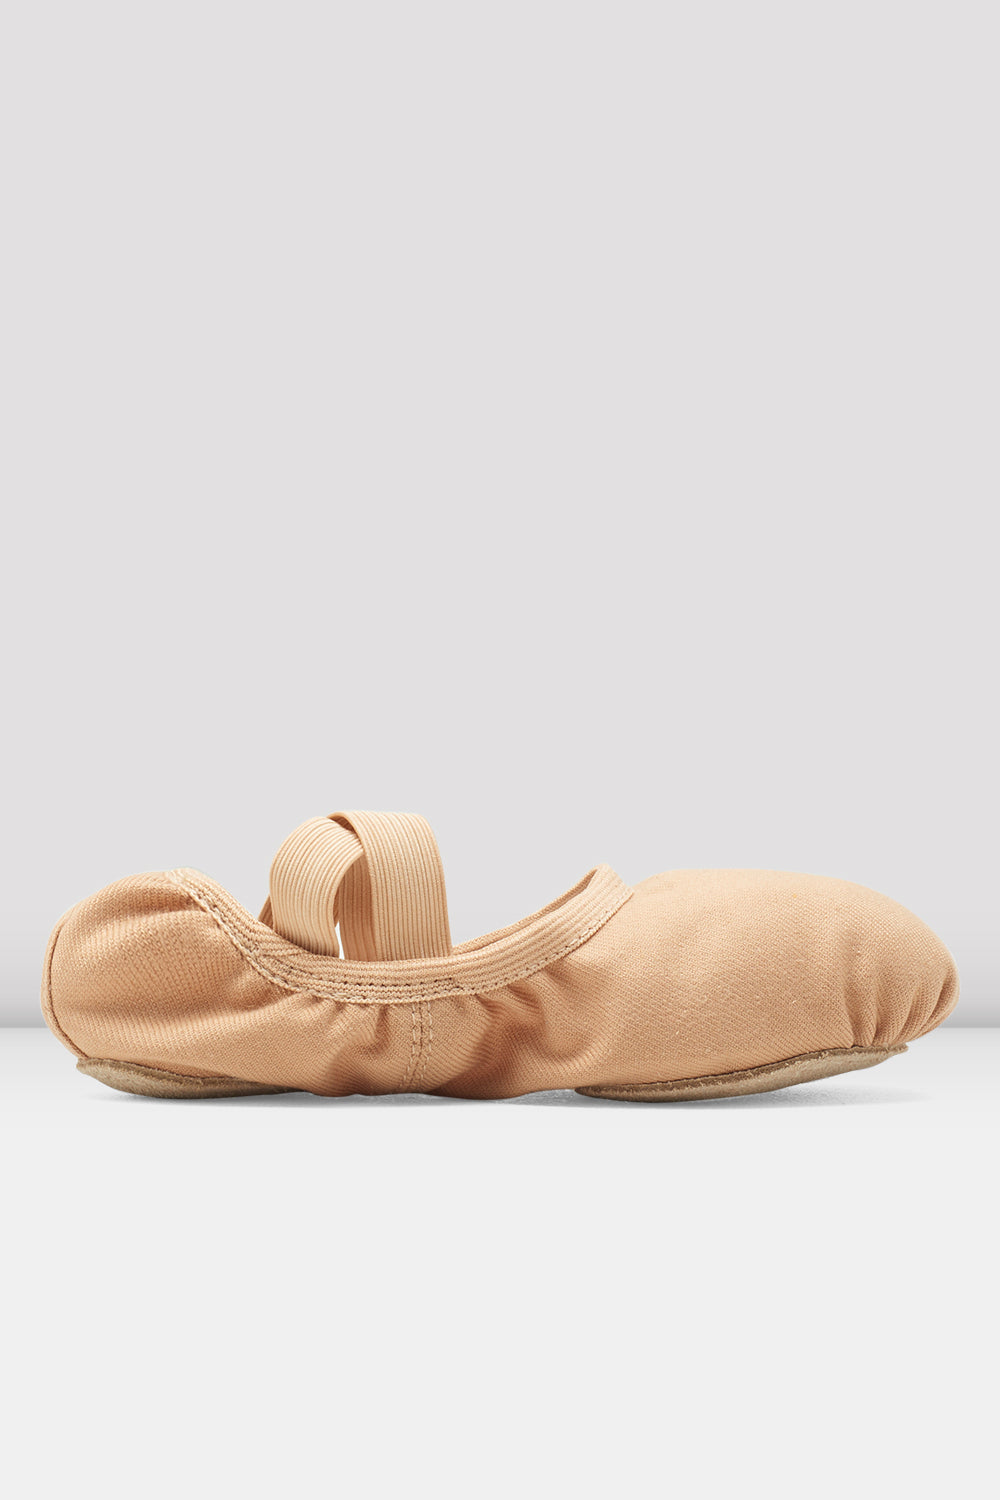 Childrens Performa Stretch Canvas Ballet Shoes